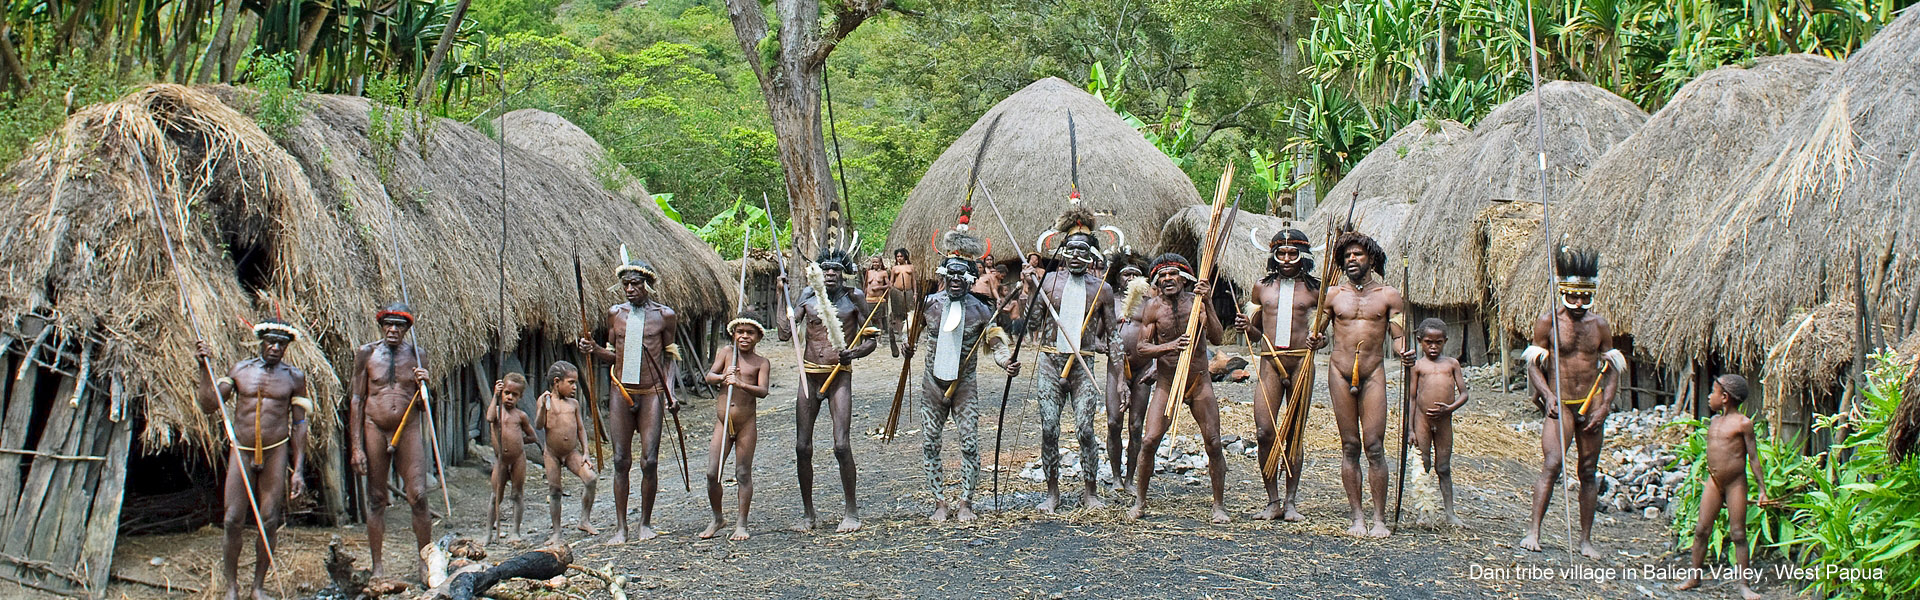 Dani tribe village in Baliem Valley, West Papua